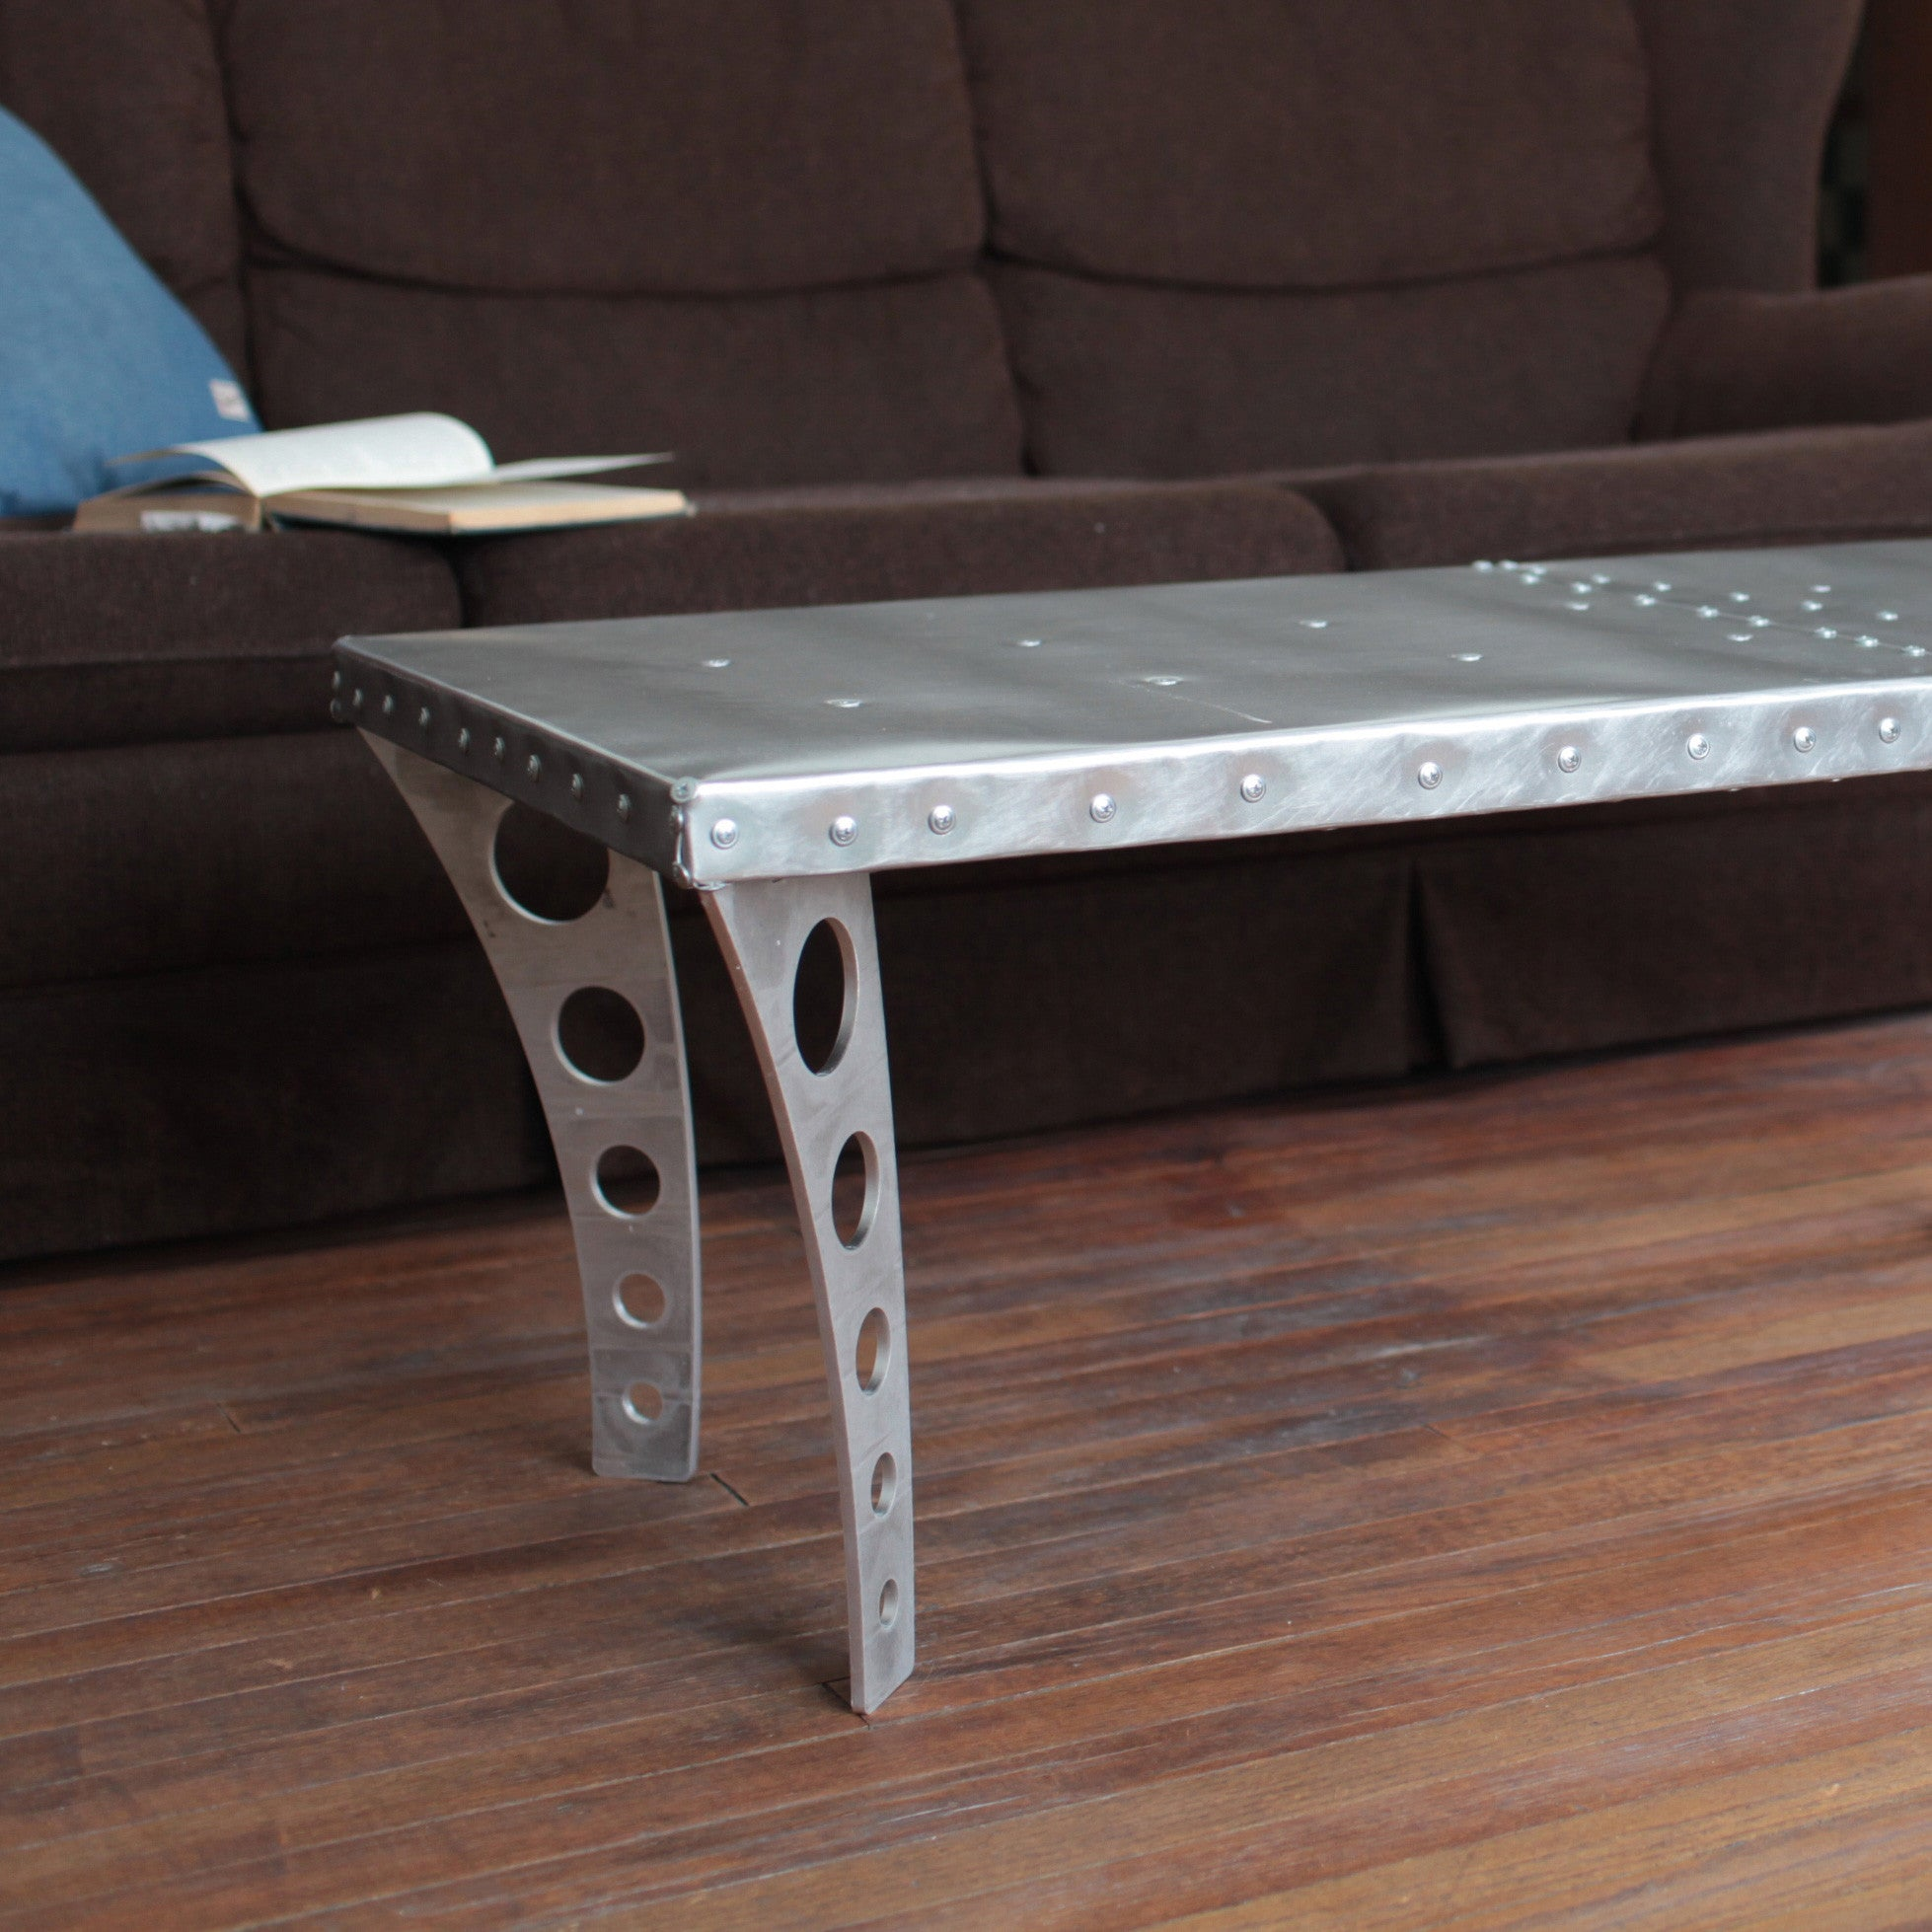 Brushed Finish JetSet Coffee Table Aluminum